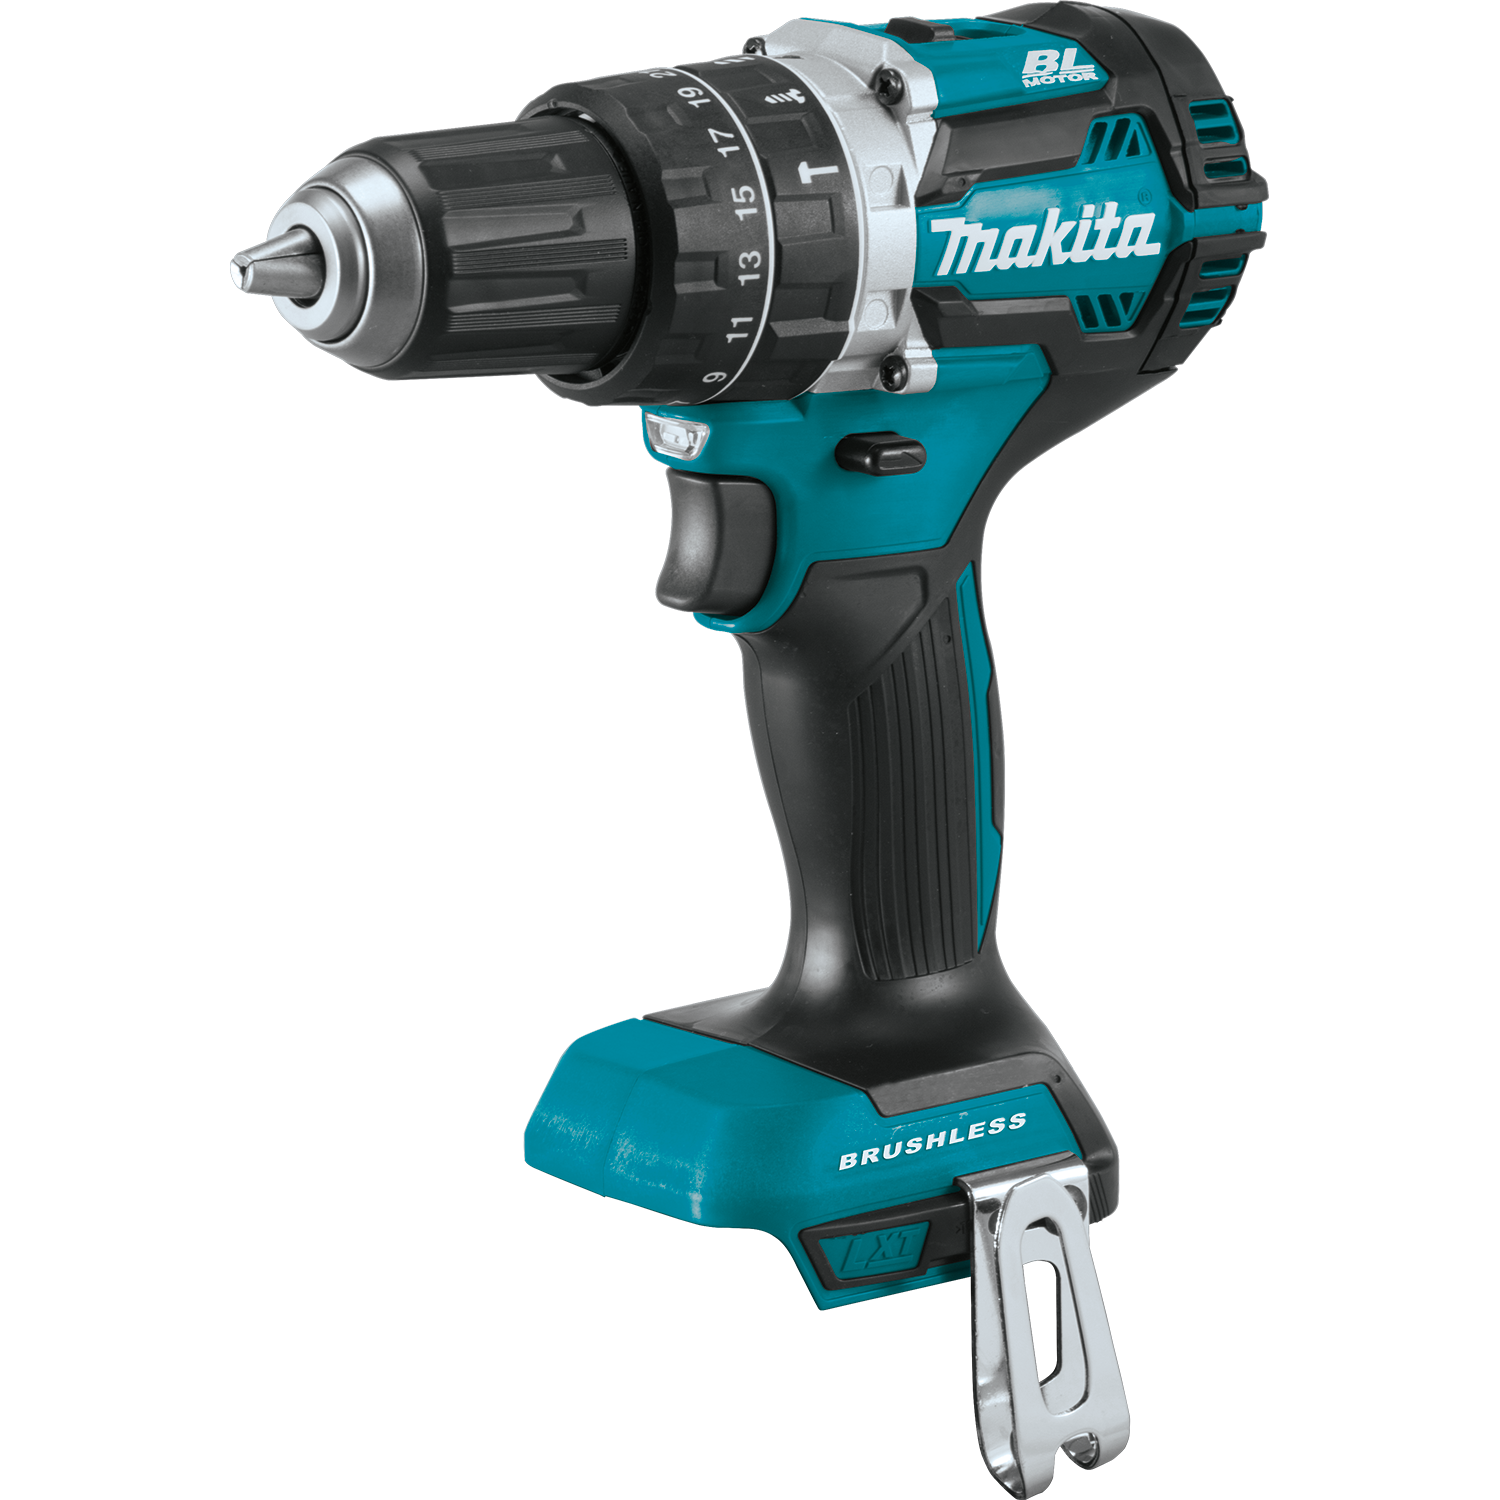 Makita Dhp481 18v Cordless Brushless Hammer Driver Drill: Product Details -XPH12Z